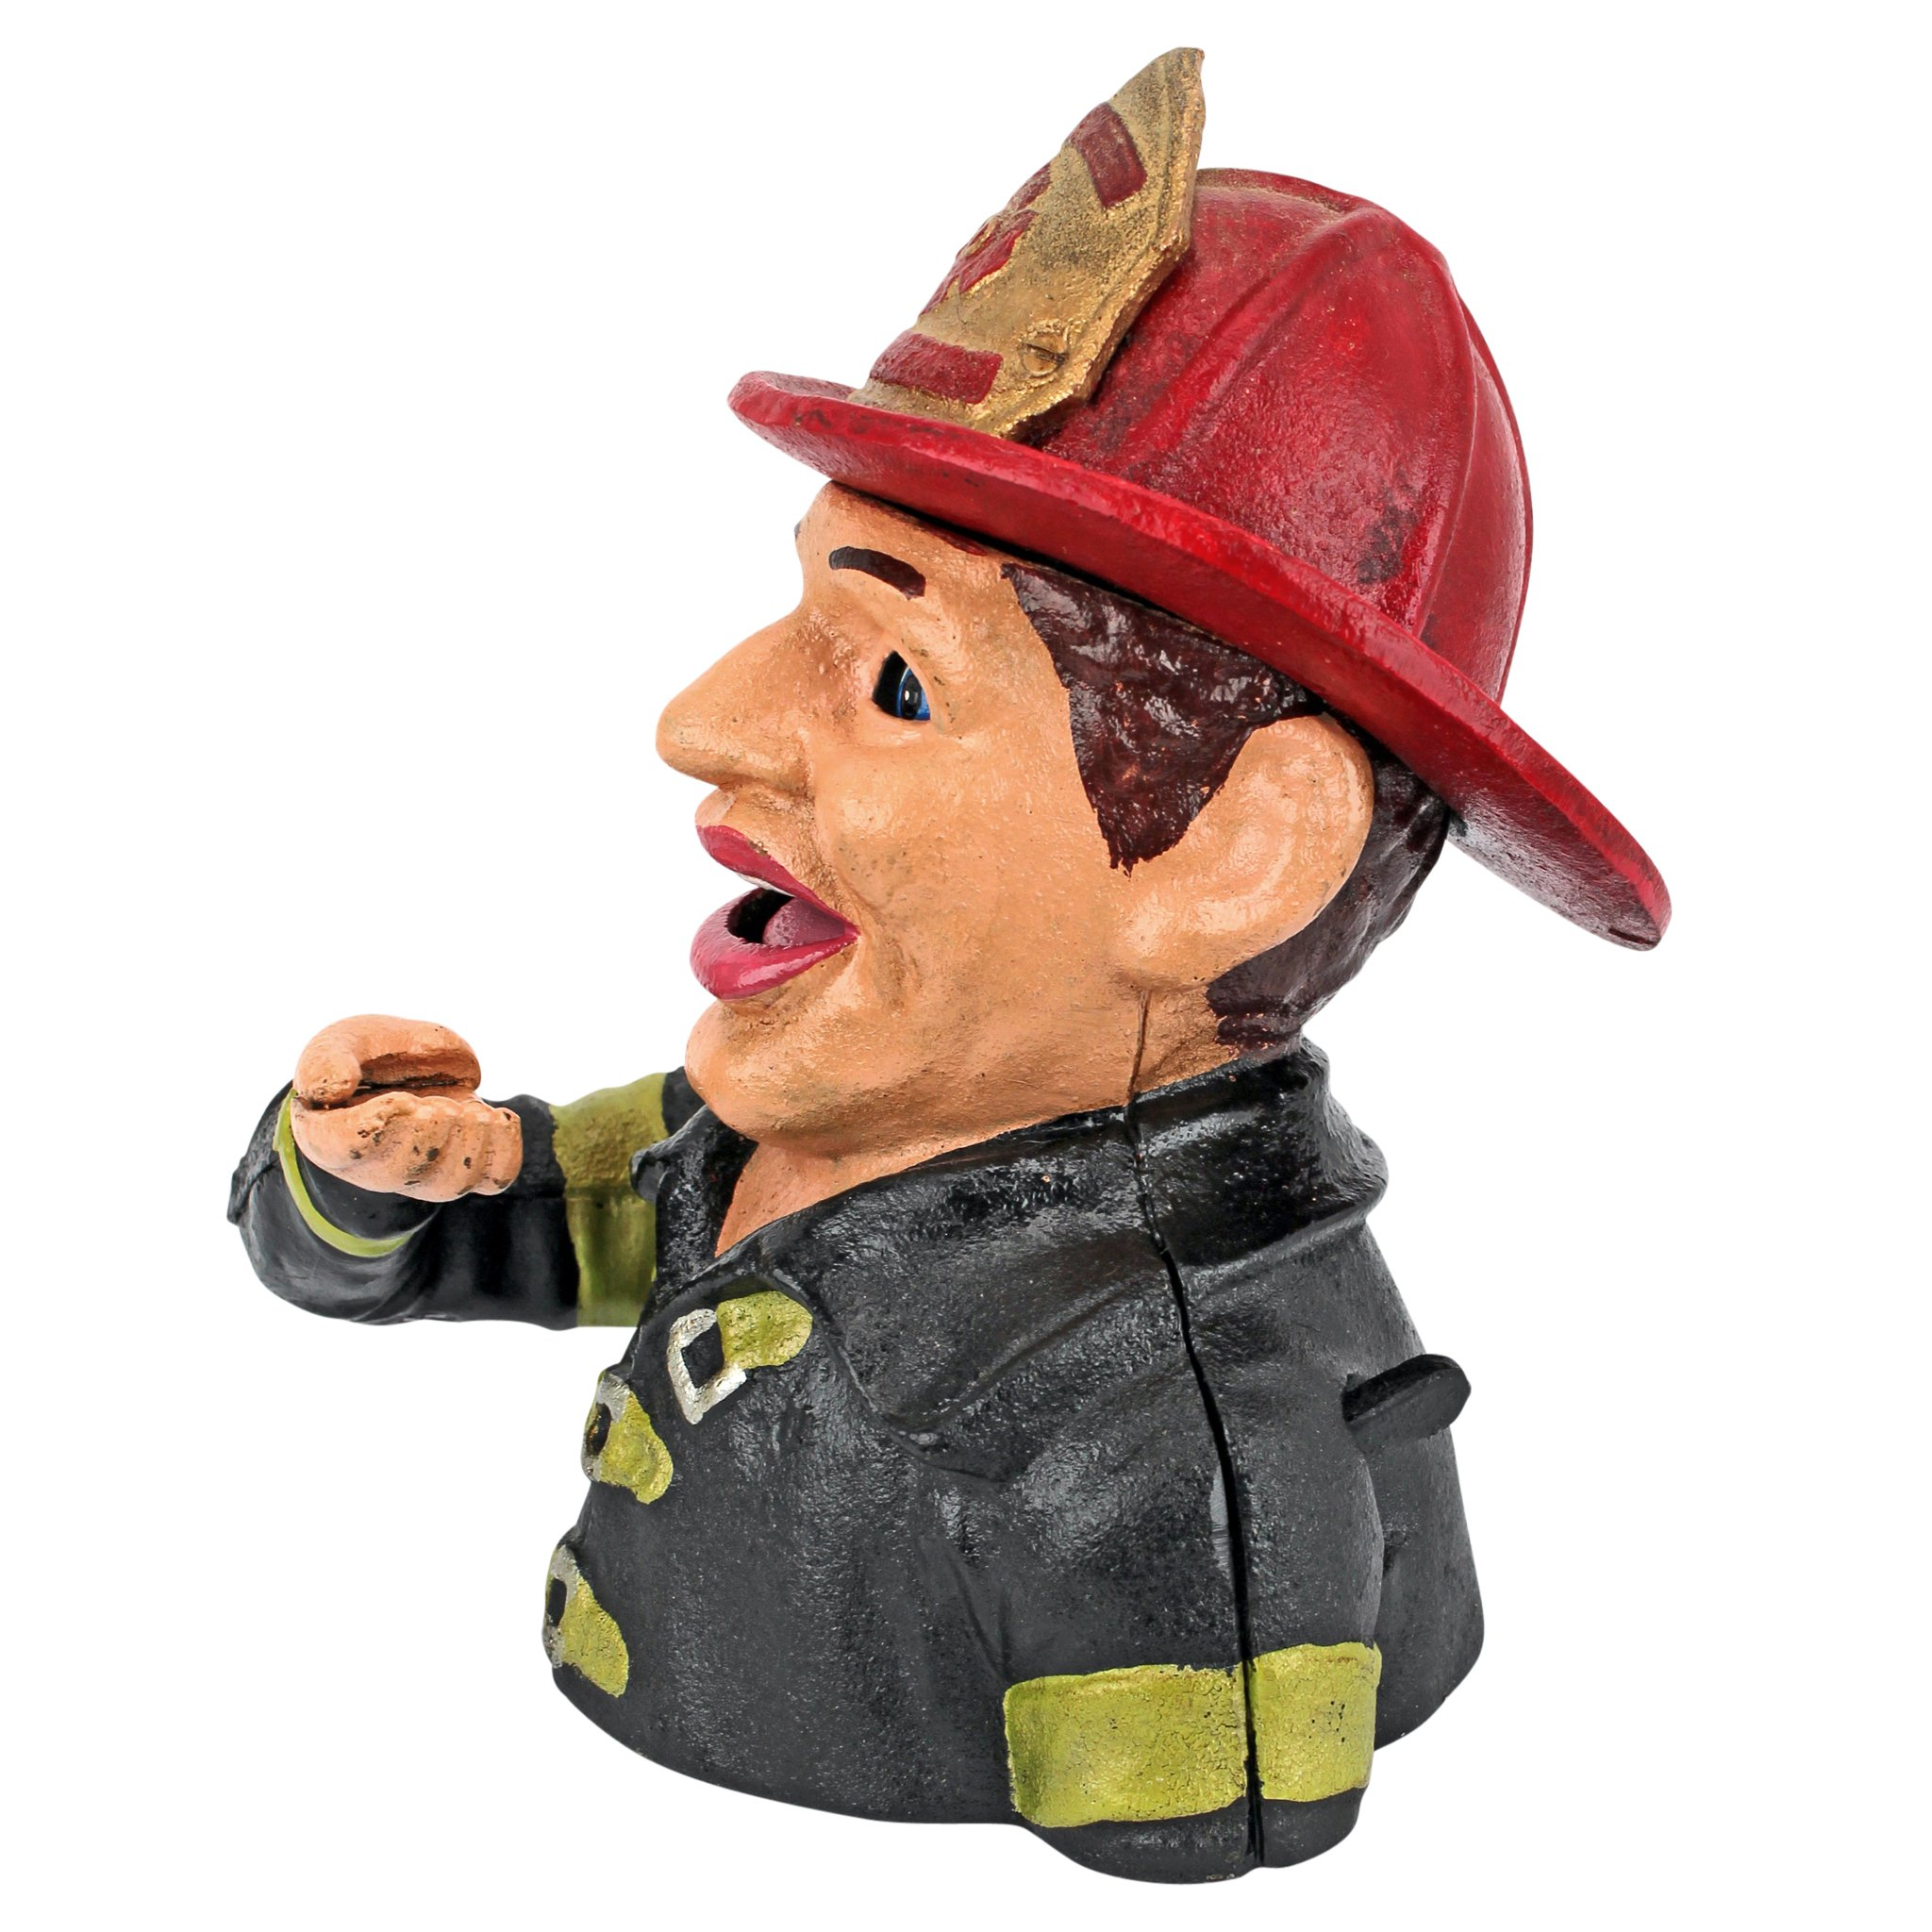 Design Toscano Fireman's Fund Die-Cast Iron Mechanical Coin Bank by Design Toscano (Image #3)